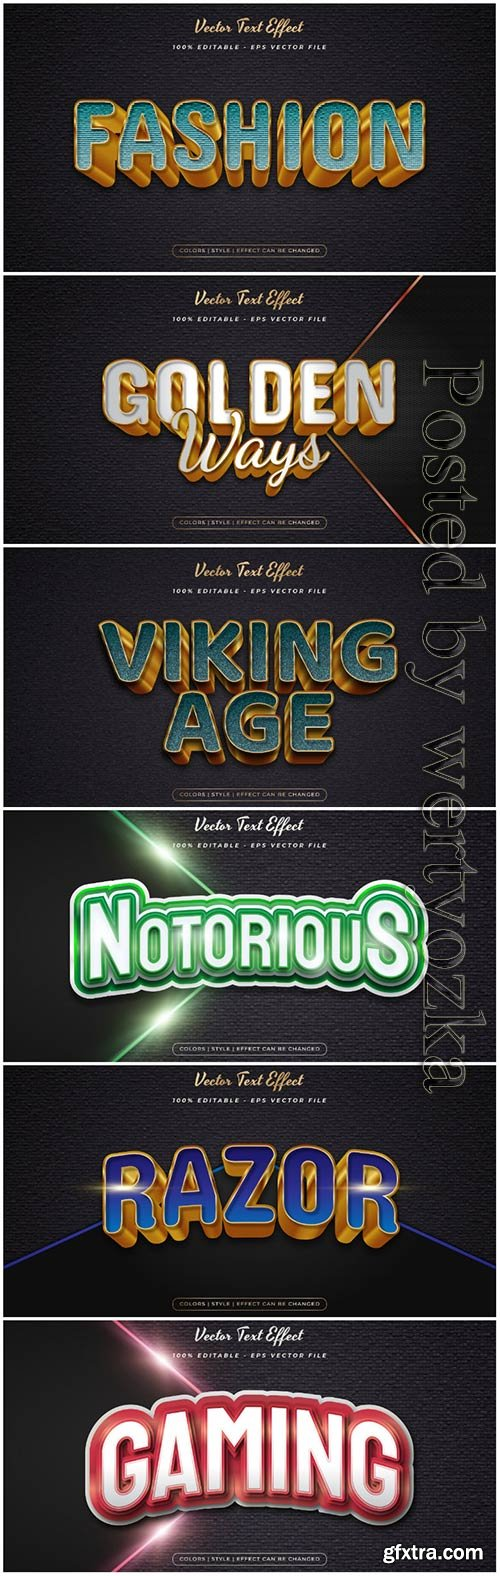 Elegant text style with embossed and textured effect in concept vector